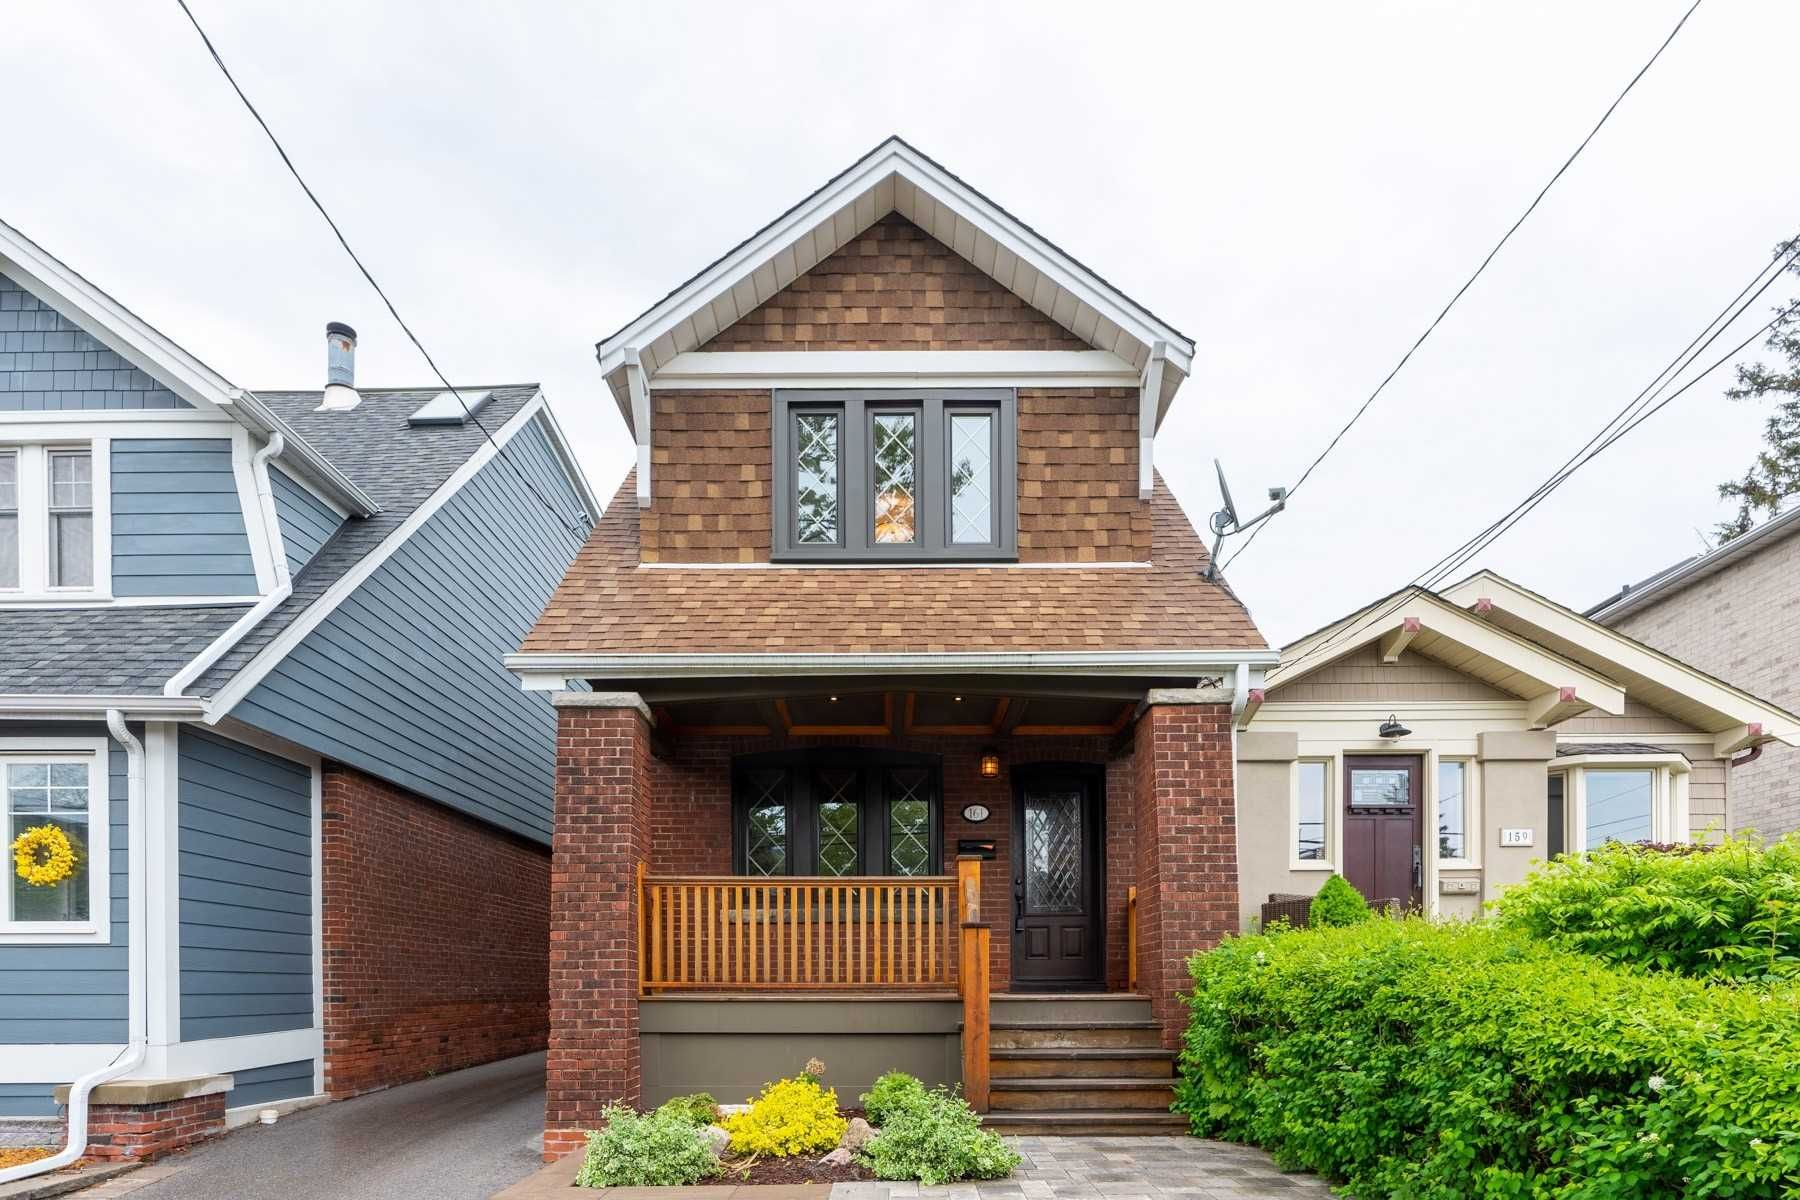 Main Photo: 161 Courcelette Road in Toronto: Birchcliffe-Cliffside House (2-Storey) for lease (Toronto E06)  : MLS®# E5263873